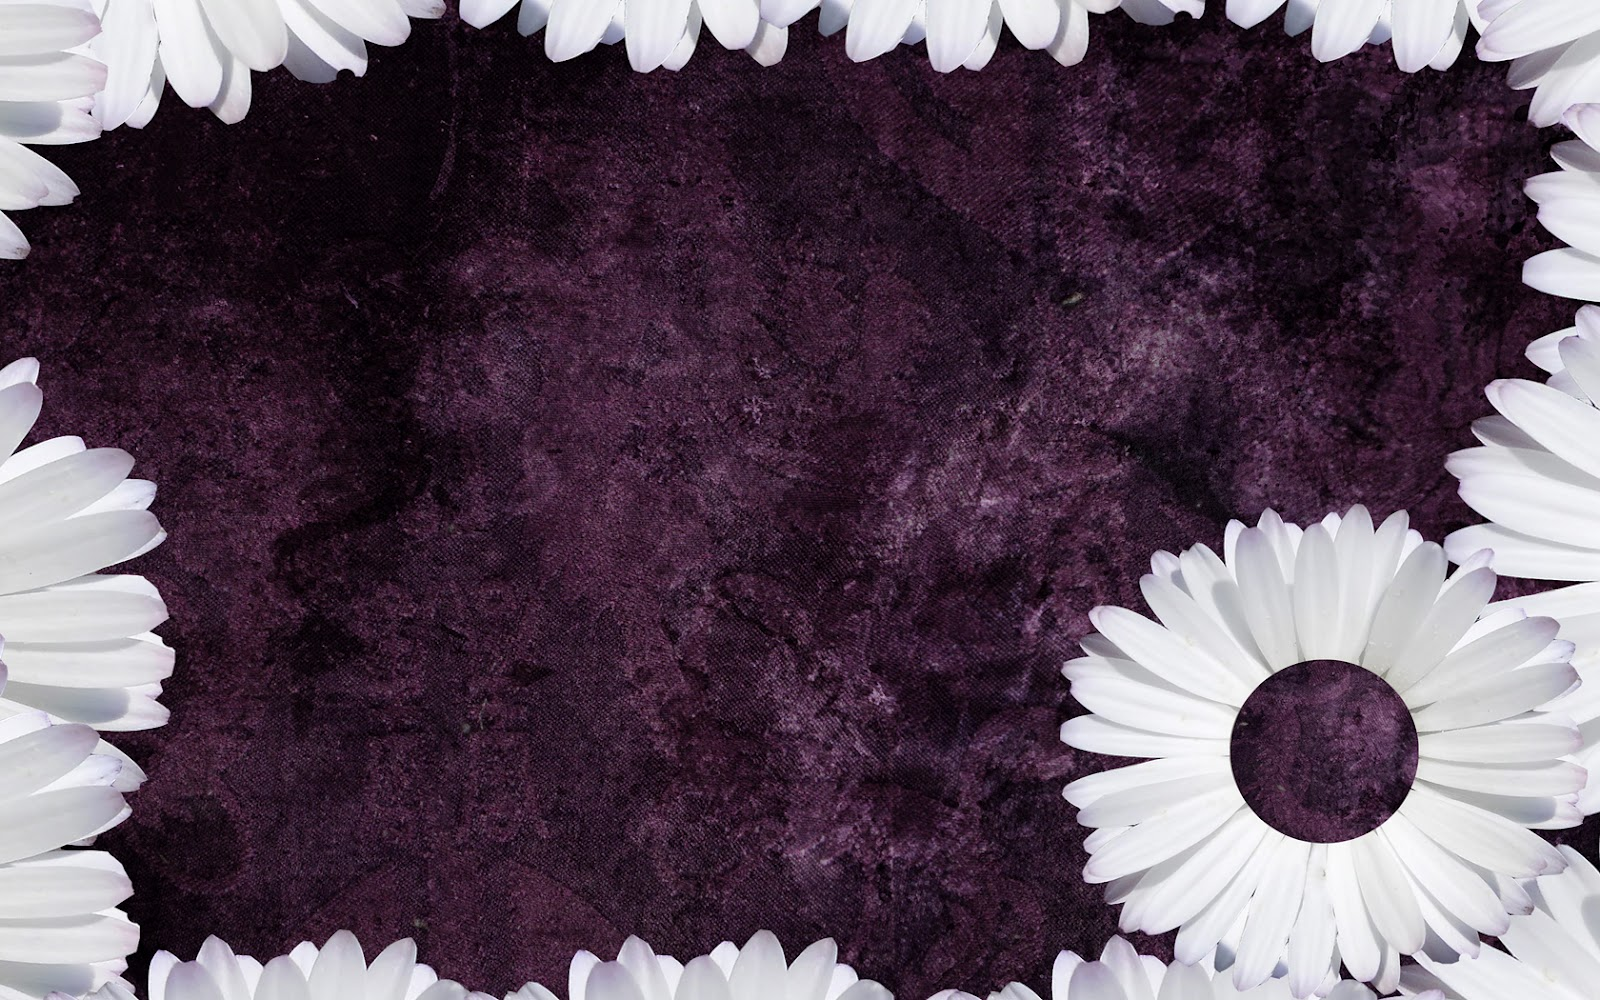 Purple Daisy Tumblr Backgrounds   ibjennyjenny Photography and 1600x1000